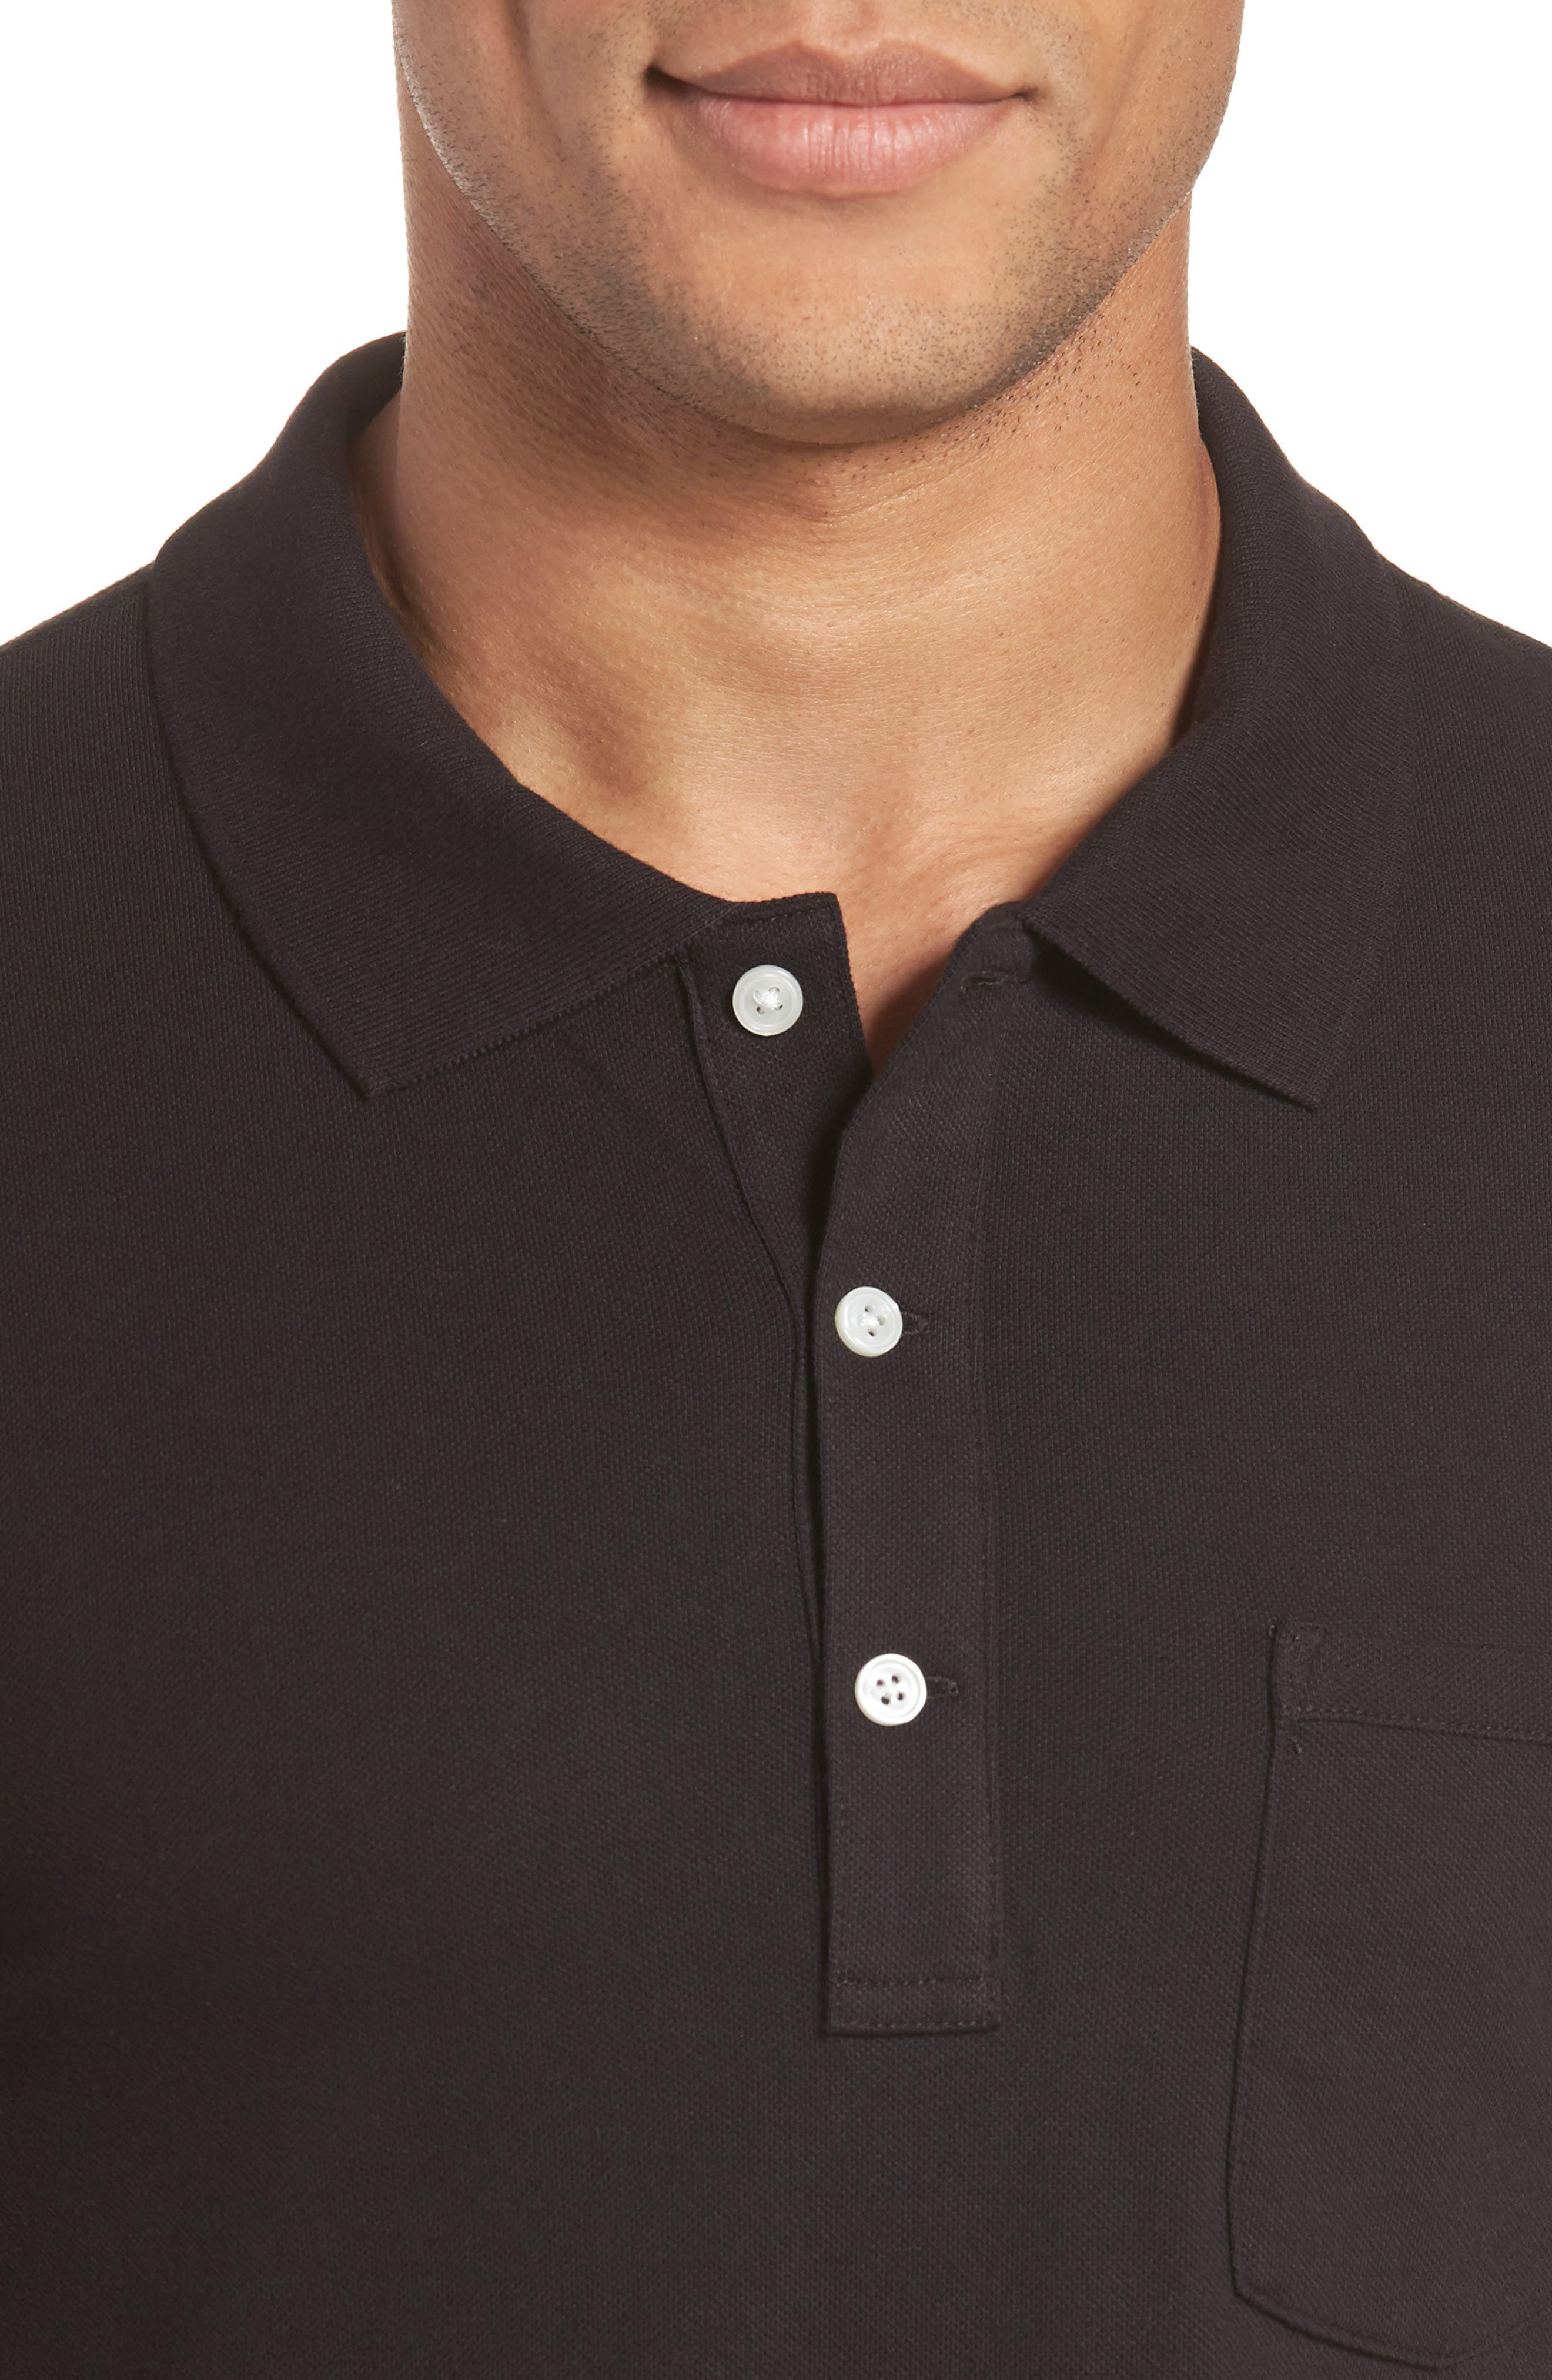 Stretch Cotton Polo Shirt,                             Alternate thumbnail 4, color,                             001